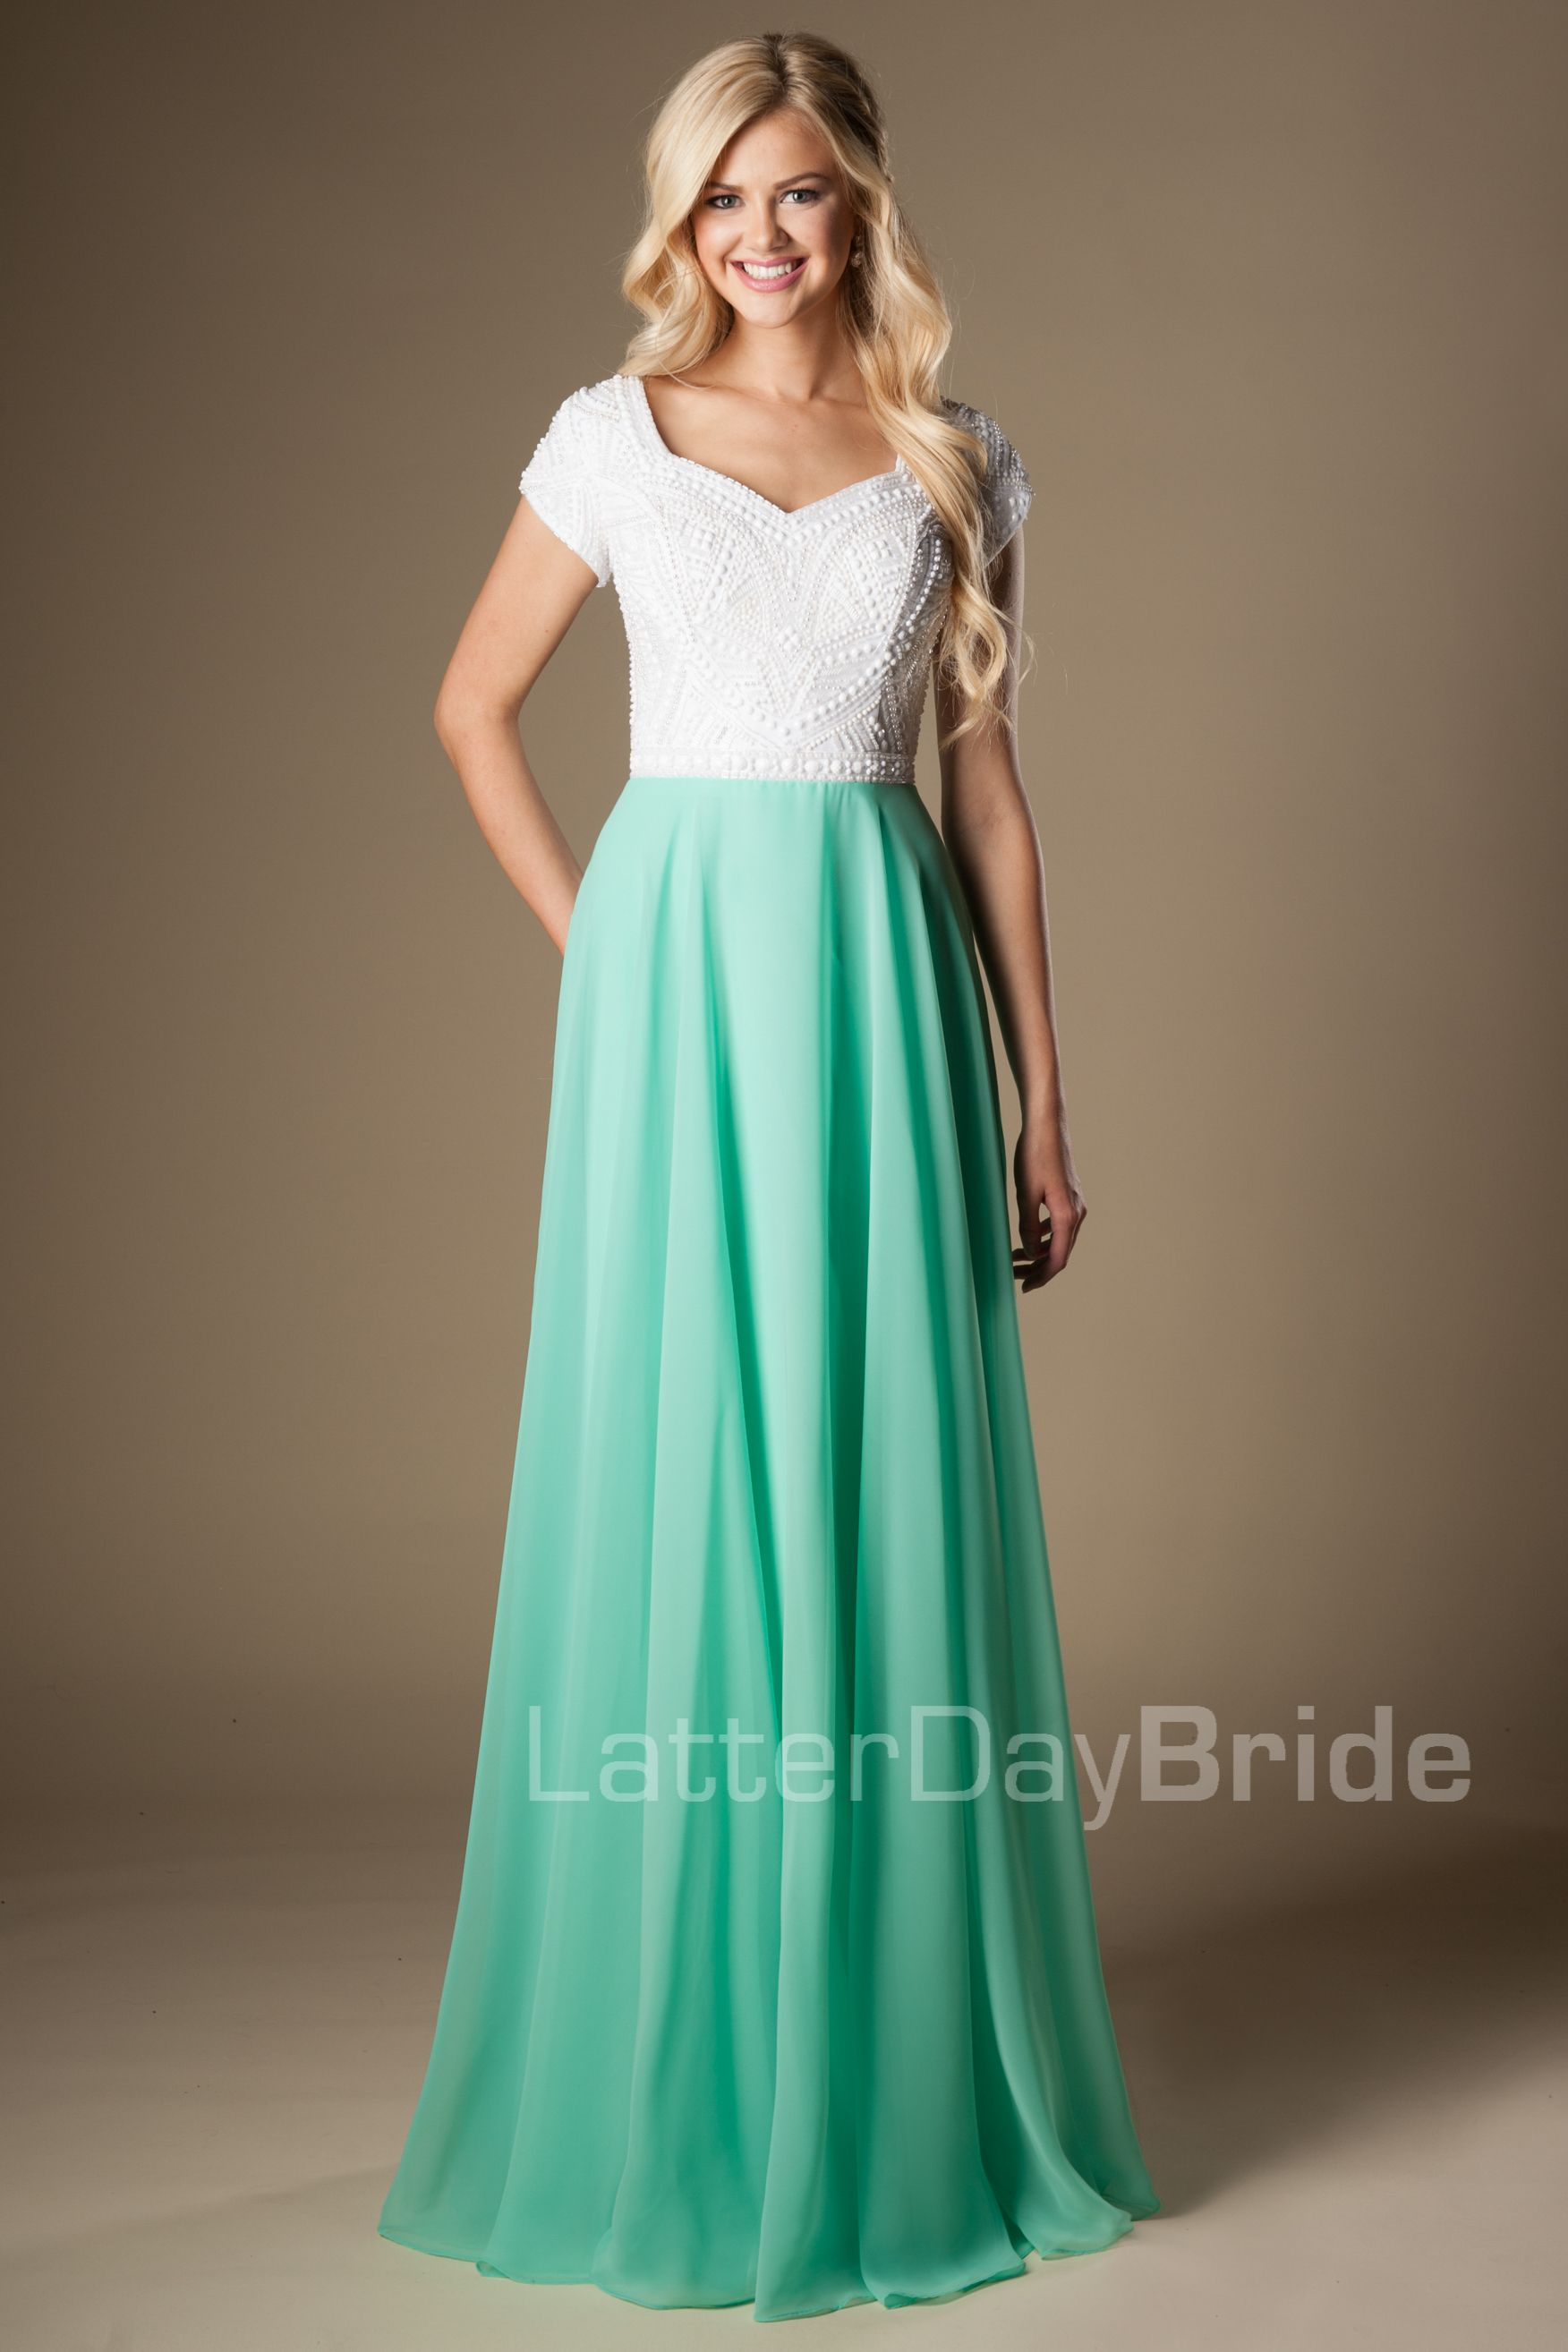 modest-prom-dress-jade-front-aqua.jpg | Fabulous Clothes that ...